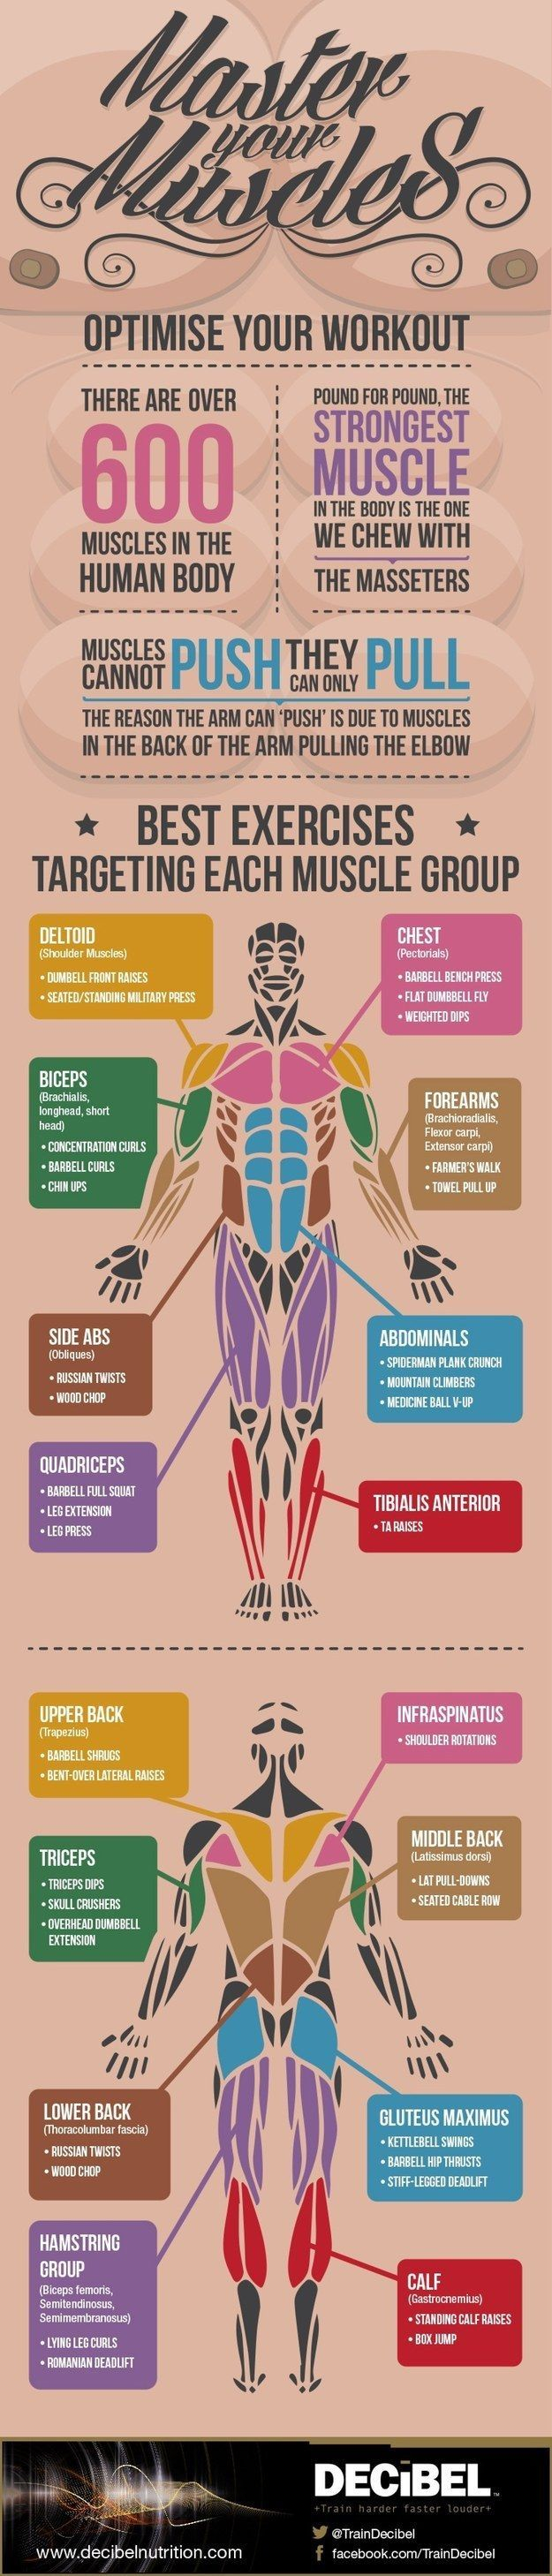 11 Best Kinesiology Images On Pinterest